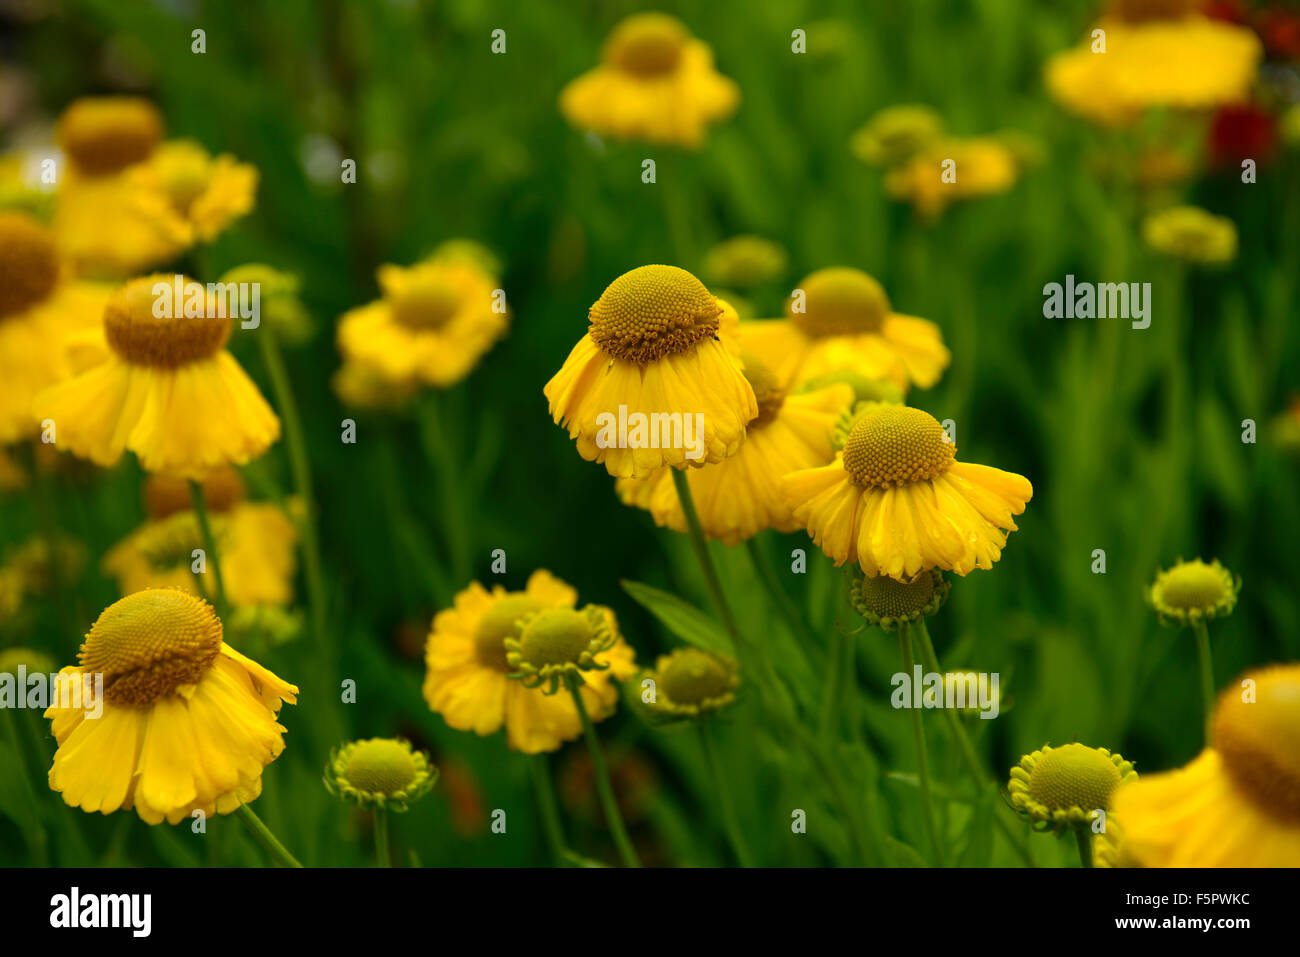 helenium golden youth syn Goldene Jugend yellow heleniums sneezeweed flower flowers flowering perennial RM Floral - Stock Image